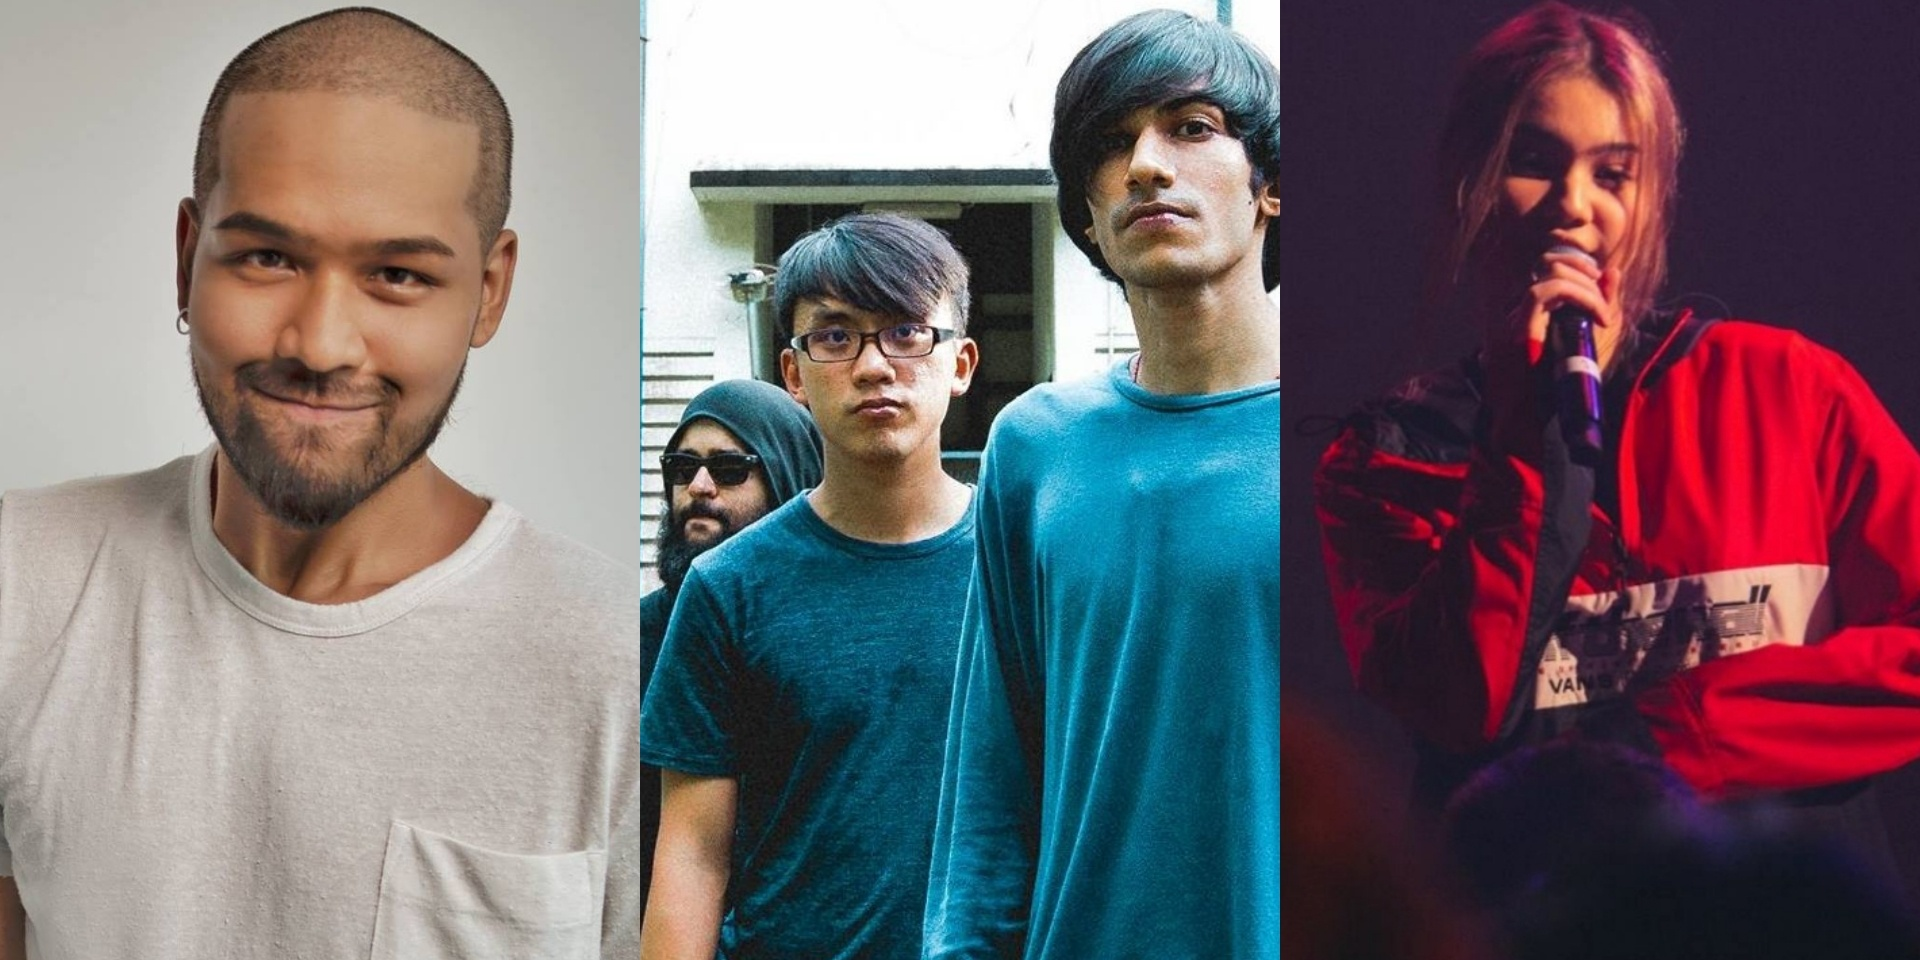 WHABBY! Music Carnival 2019 announces first wave lineup: Joshua Simon, Knightingale, Shye and more confirmed